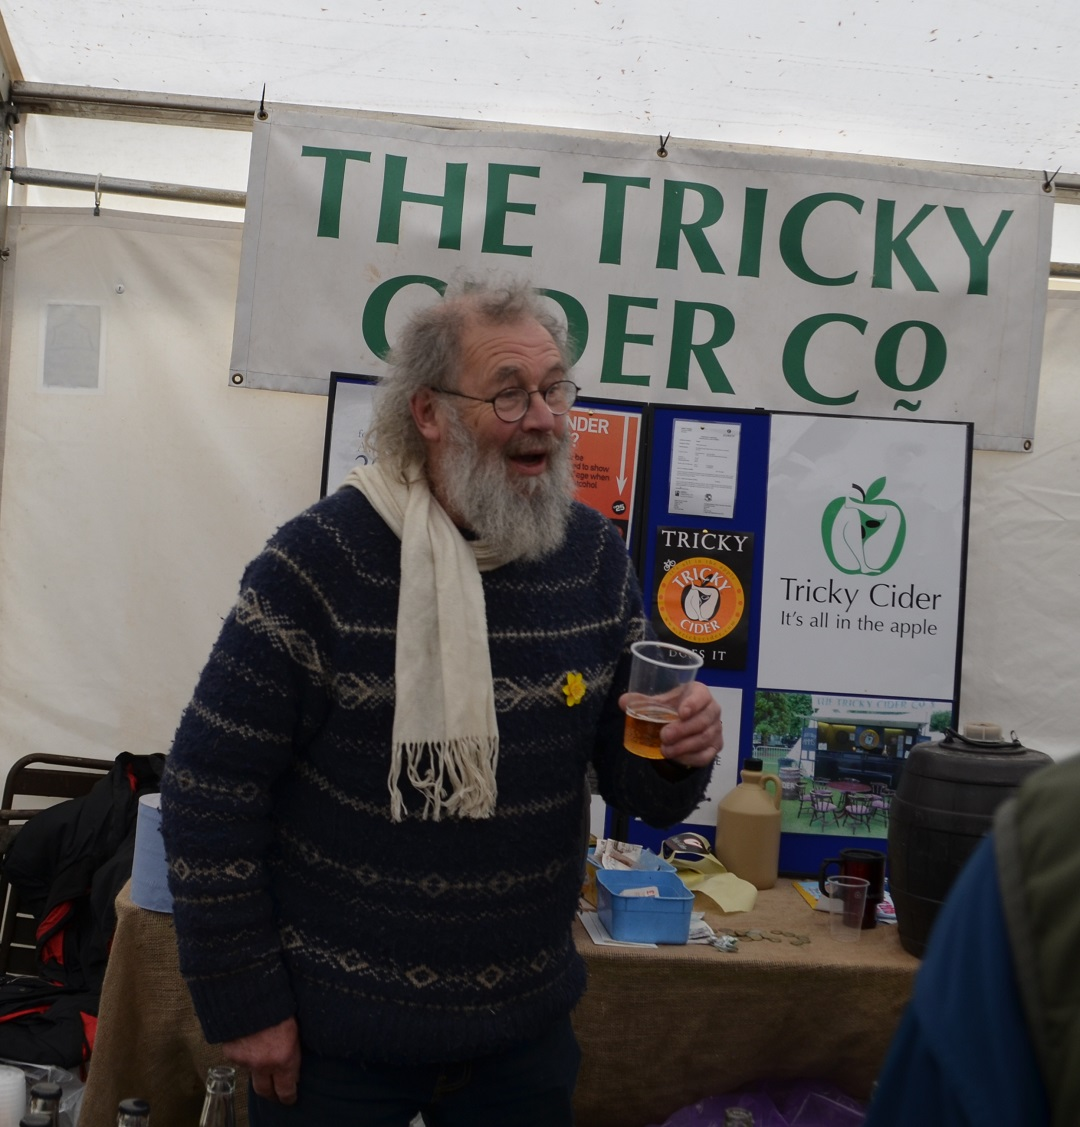 exeter-festival-of-south-west-food-and-drink-cider-man